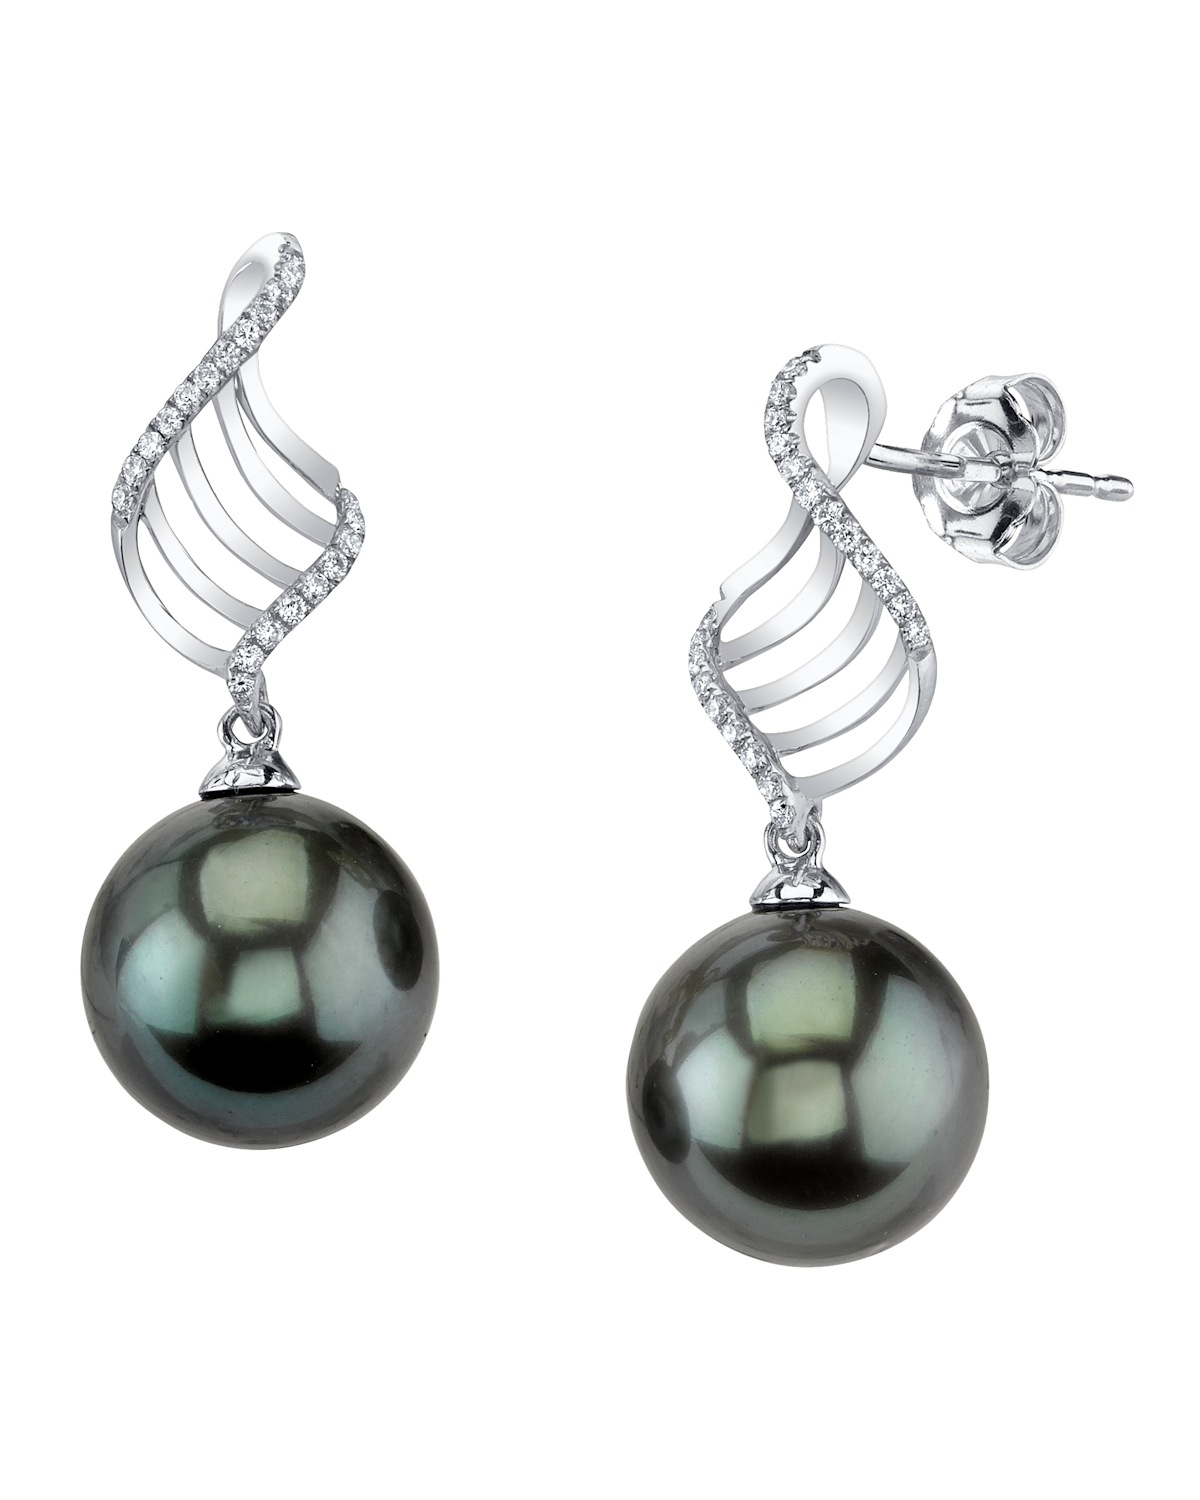 Tahitian South Sea Pearl Earrings | The Pearl Source